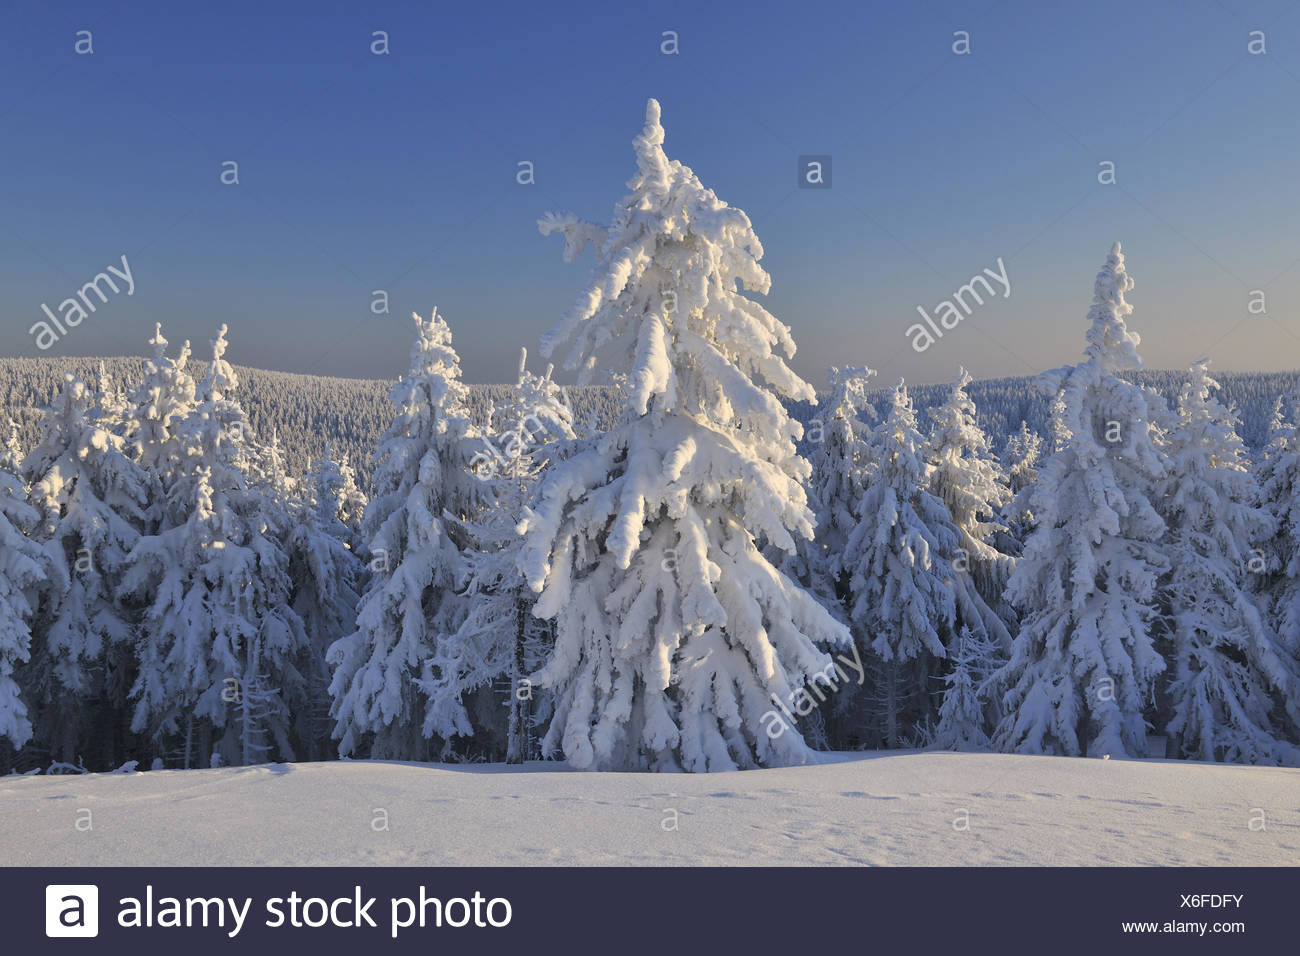 Snowy conifers, winter, Schneekopf, Gehlberg, Thuringia, Germany, - Stock Image